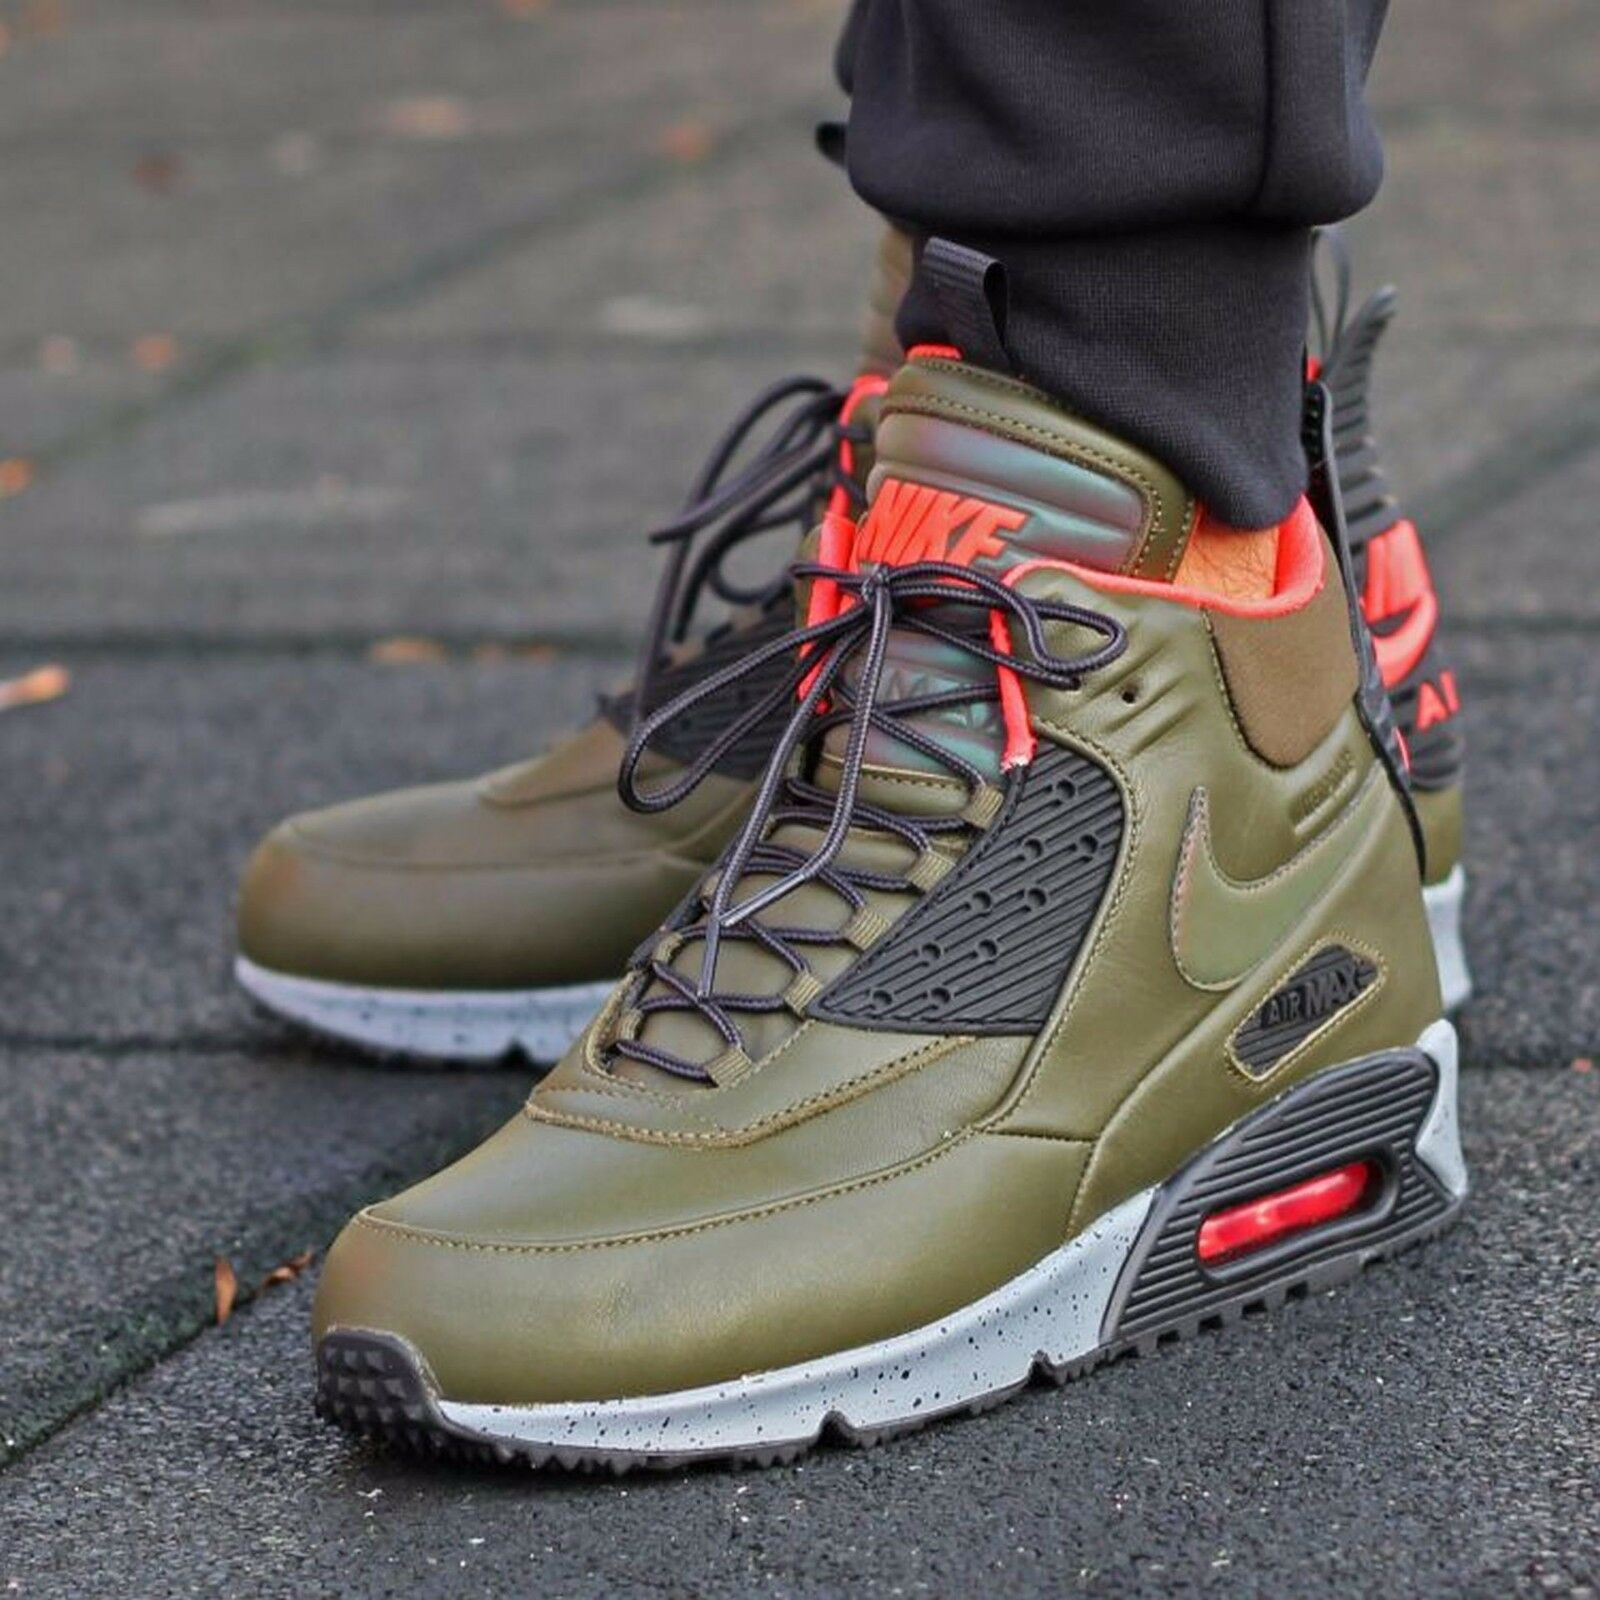 NIKE Air Shoes Max 90 Sneakerboot Mens Shoes Air Sz 8.5 684714-300  Dark Loden/Black beb48d